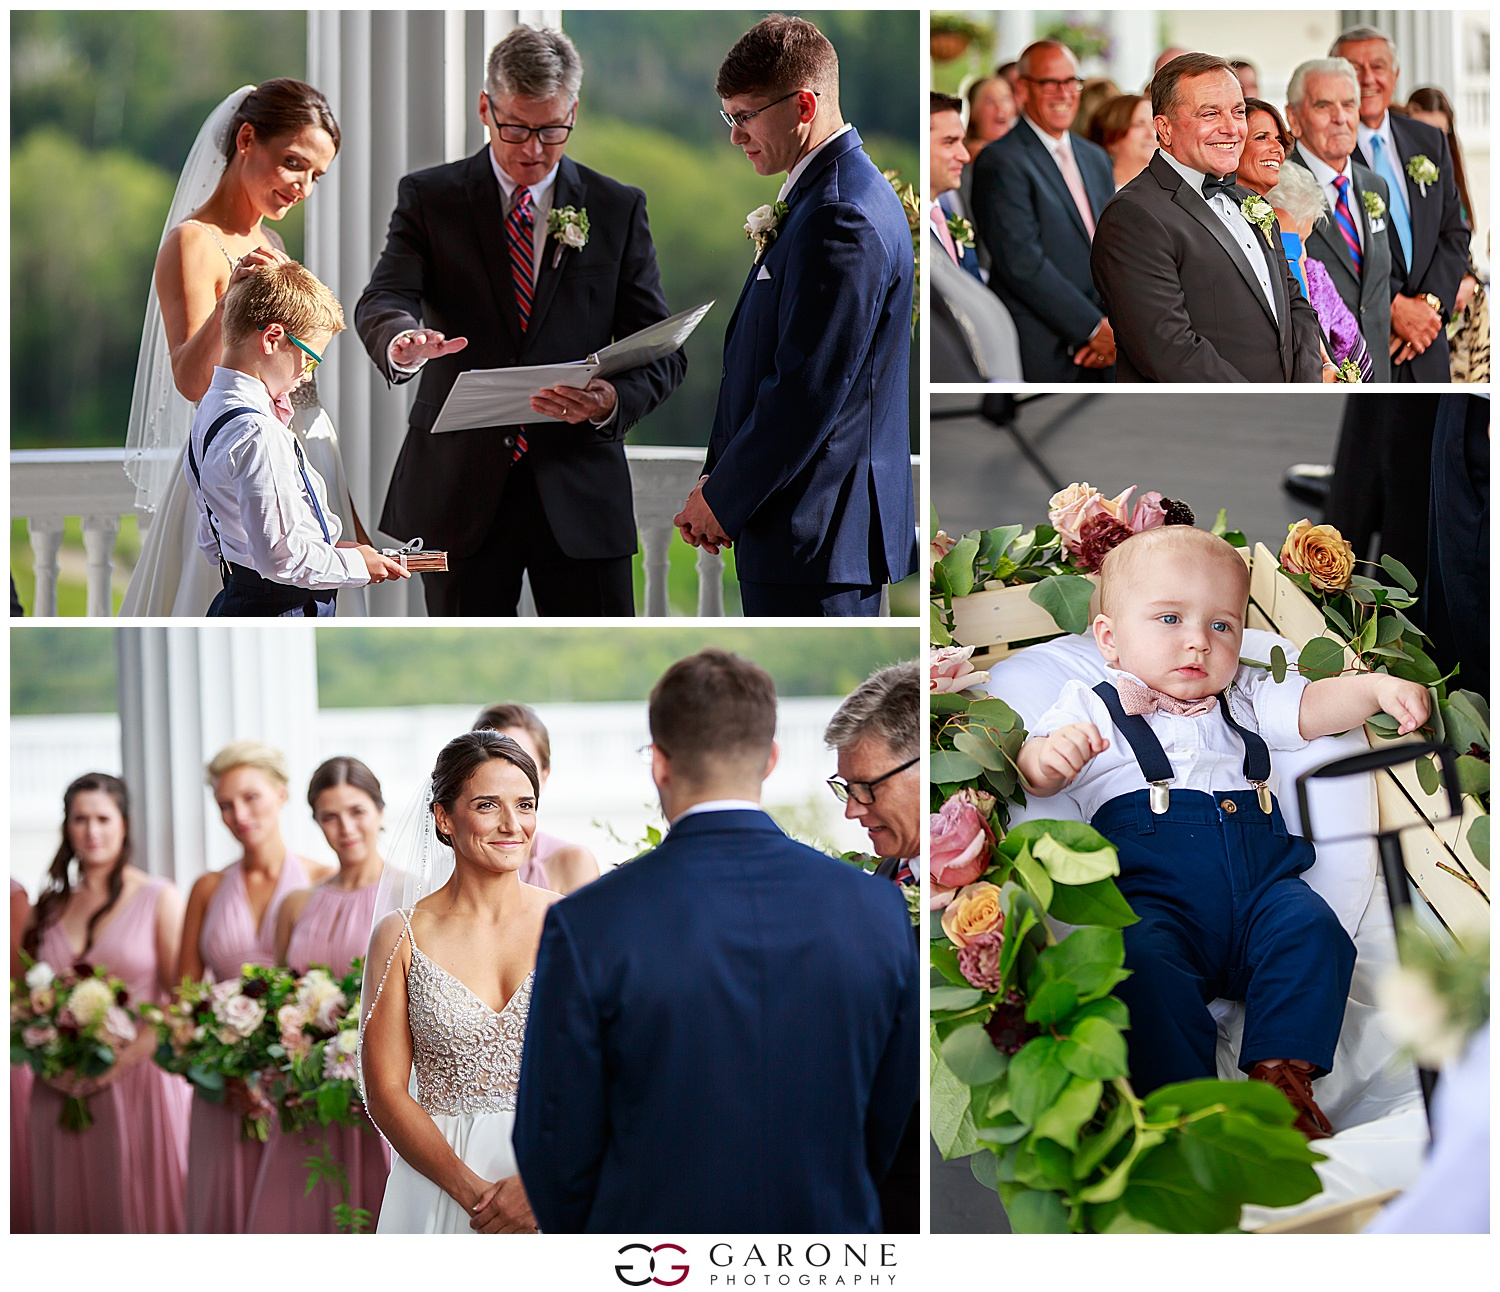 Omni_Mount_Washington_hotel_Wedding_White_Mountain_Wedding_Garone_Photography_0017.jpg